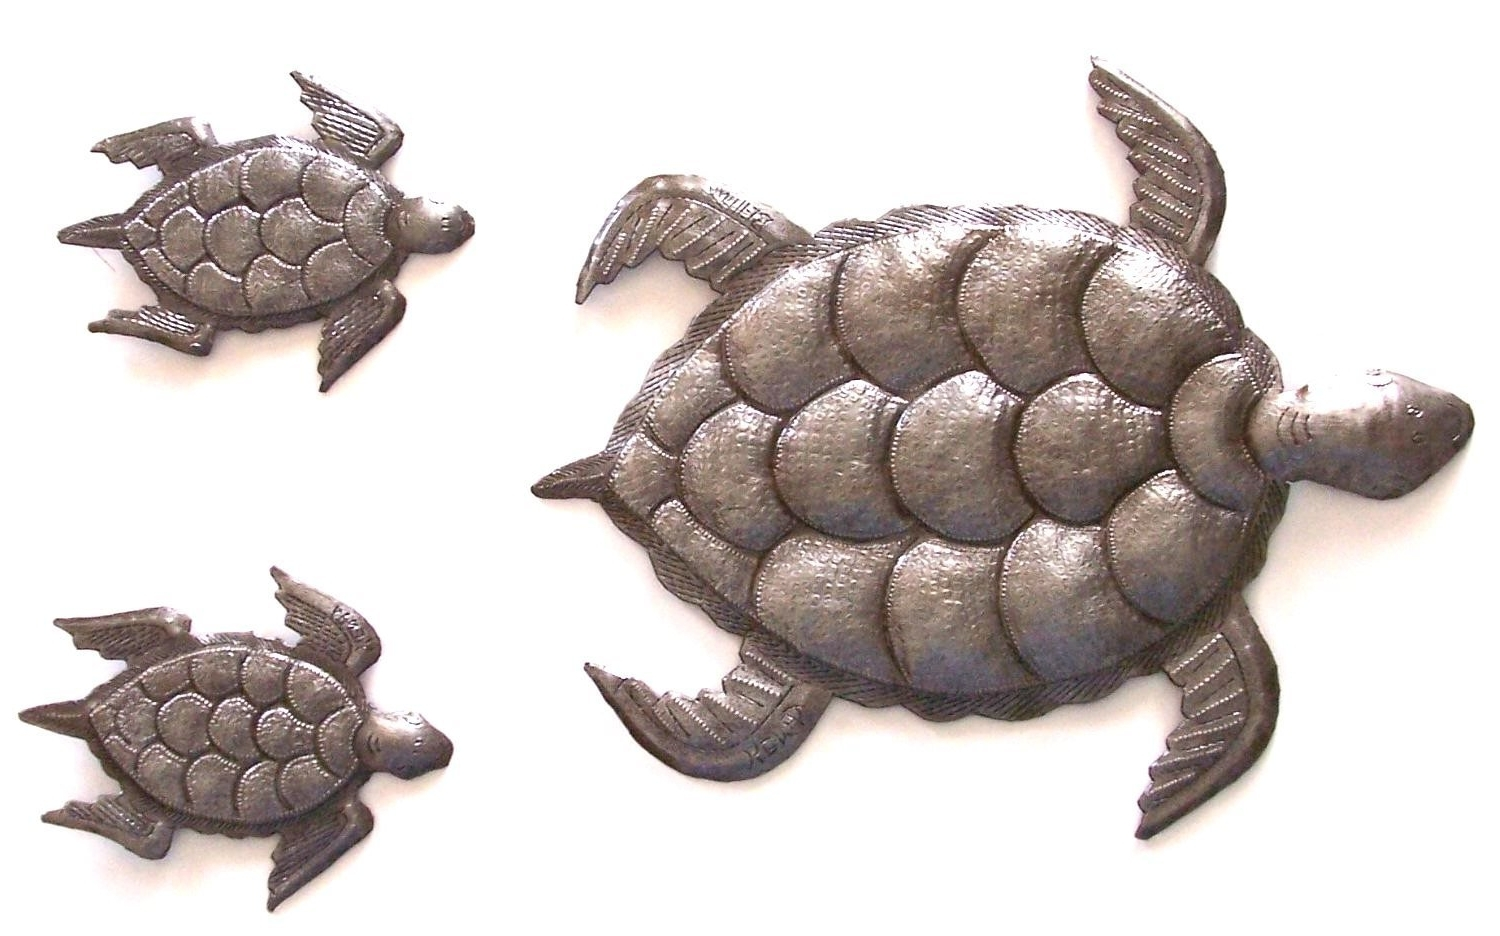 Widely Used Outdoor Metal Turtle Wall Art Within Amazon: Sea Turtles Wall Art, Ocean Art, Facing Left From (View 9 of 15)